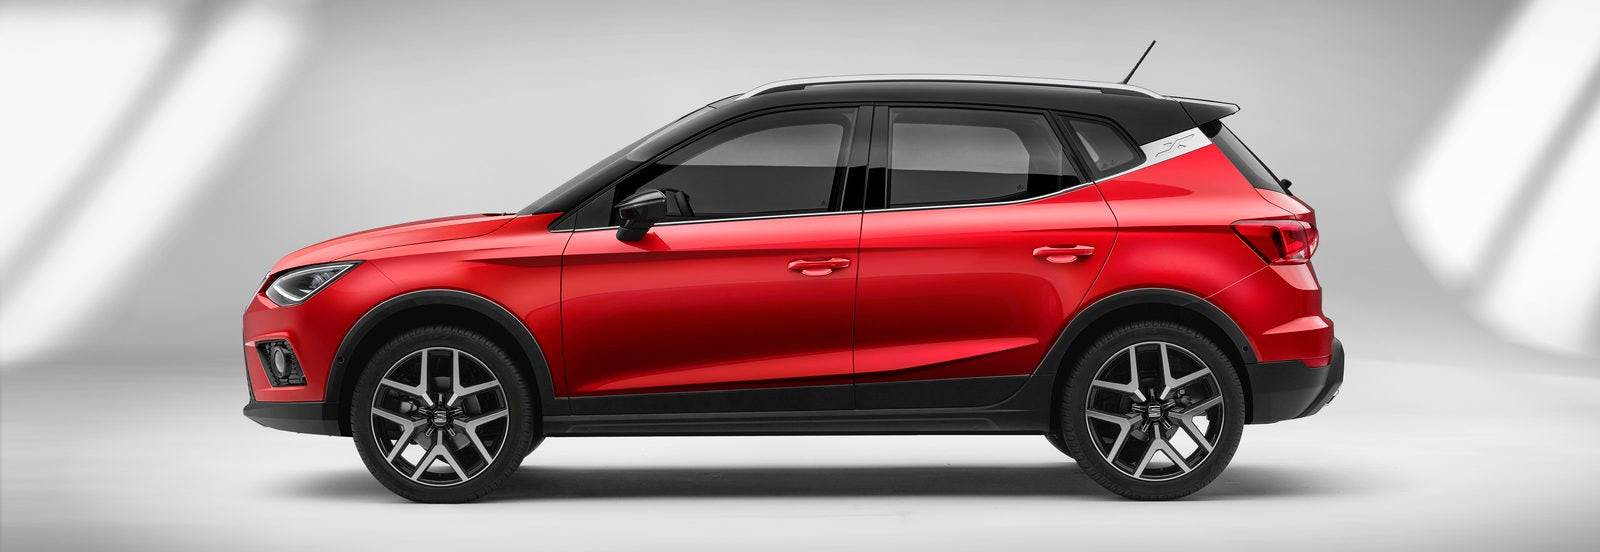 2018 seat arona suv price specs and release date carwow. Black Bedroom Furniture Sets. Home Design Ideas